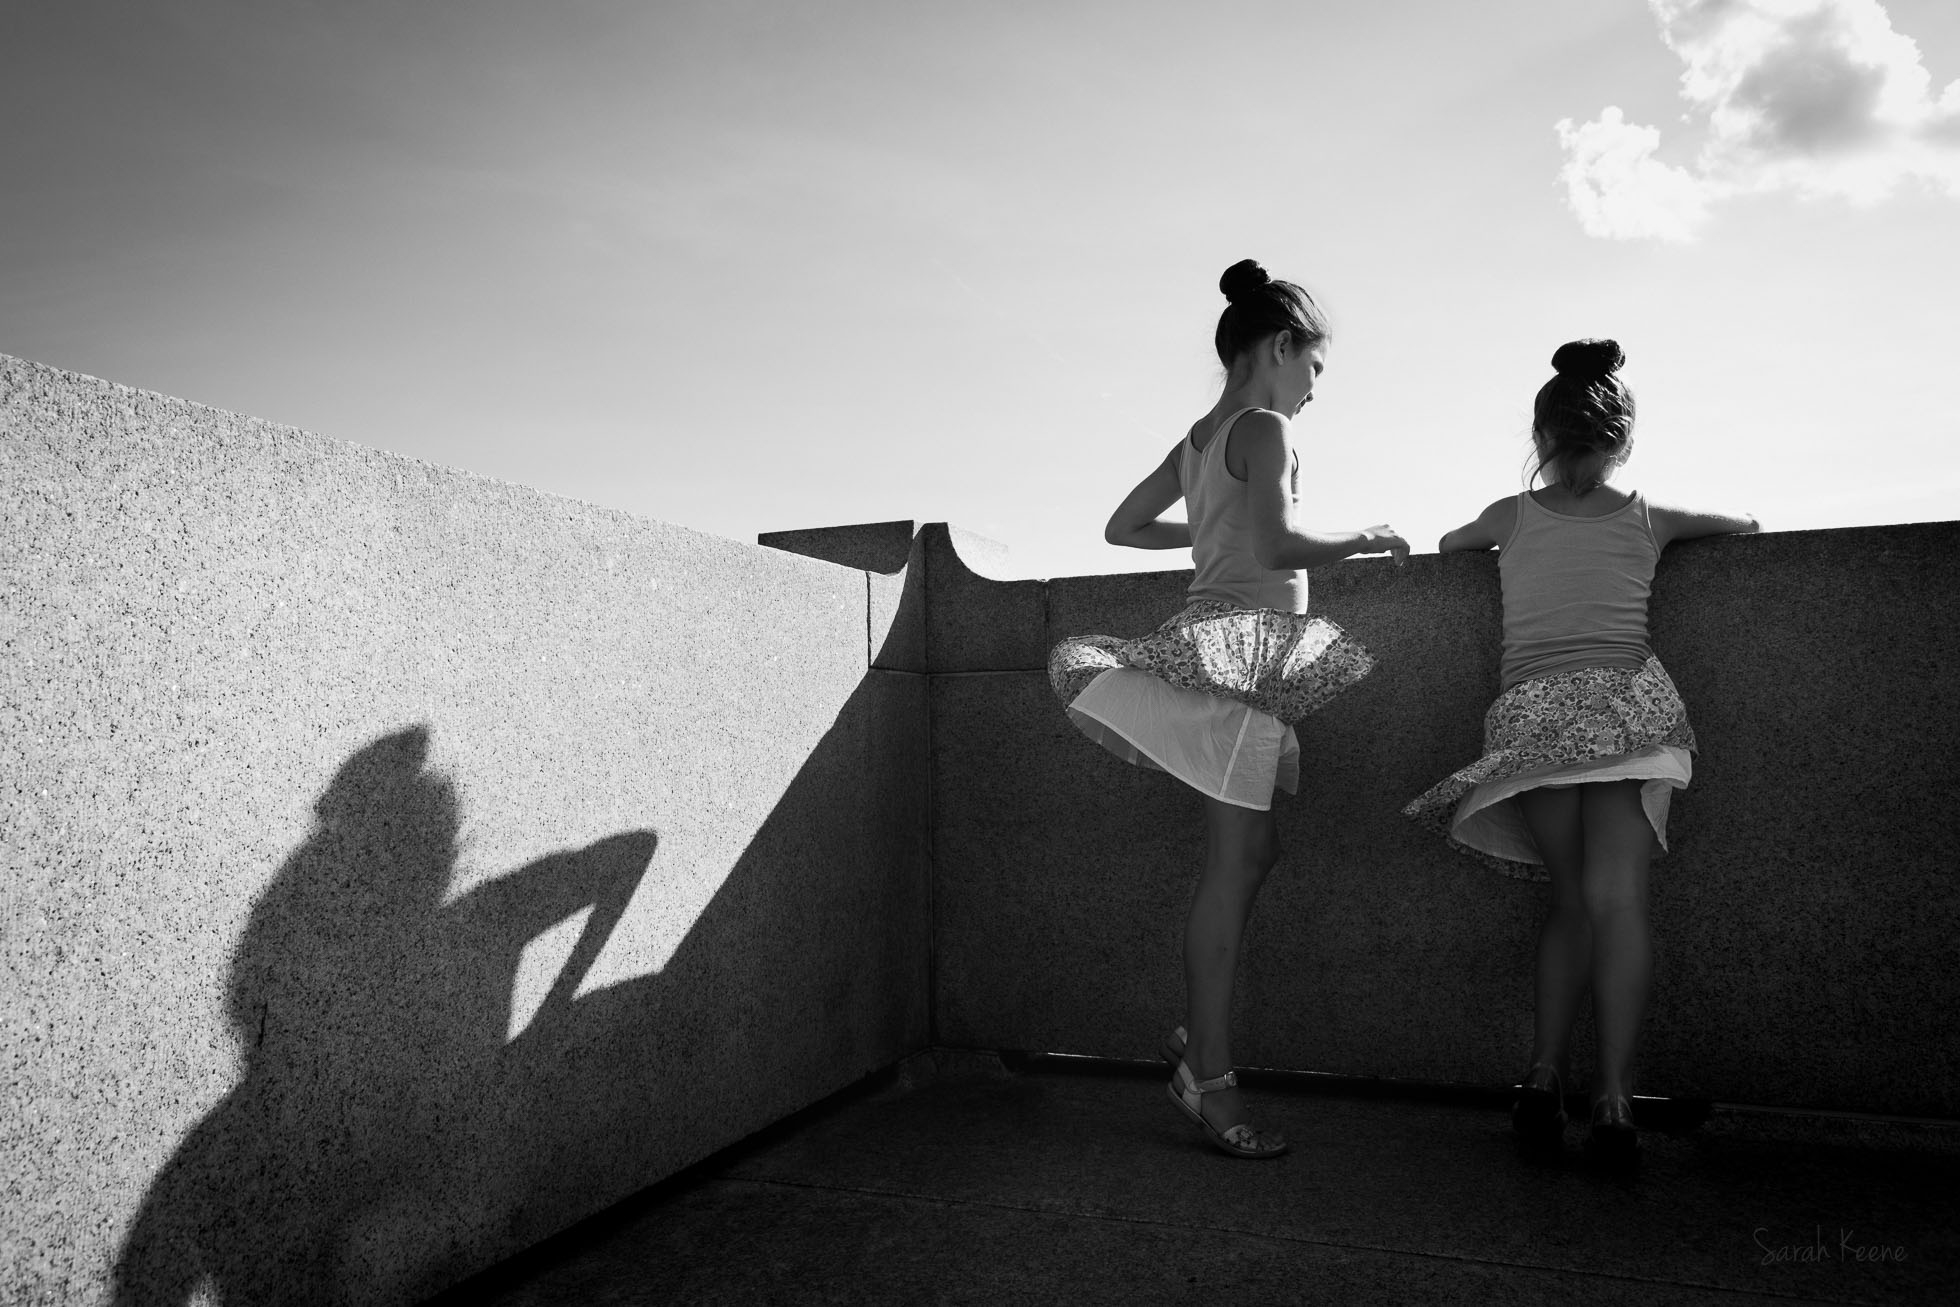 Windy-day-two-girls-skirts-fly-up-by-Sarah-Keene